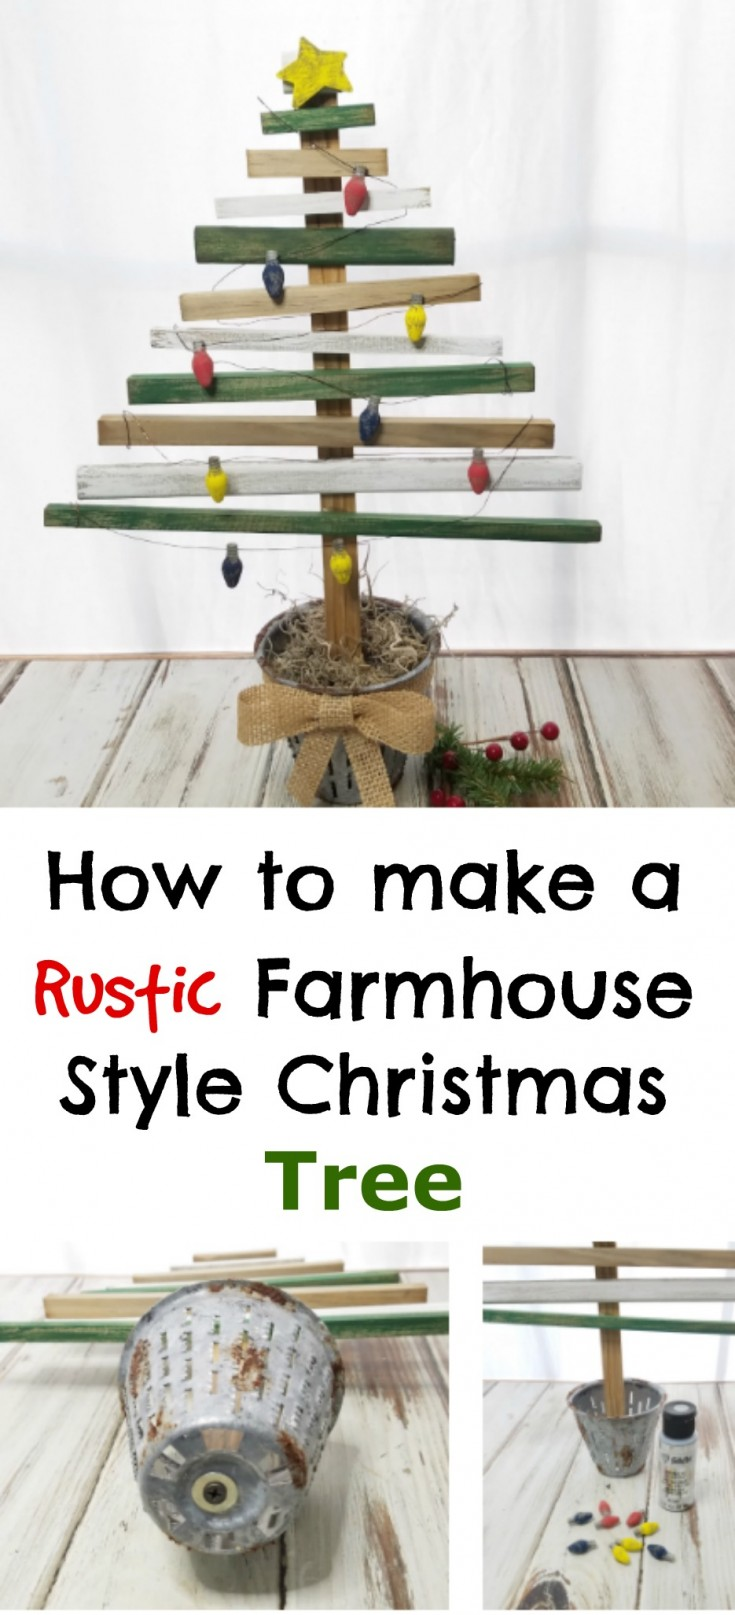 Rustic farmhouse style Christmas Tree